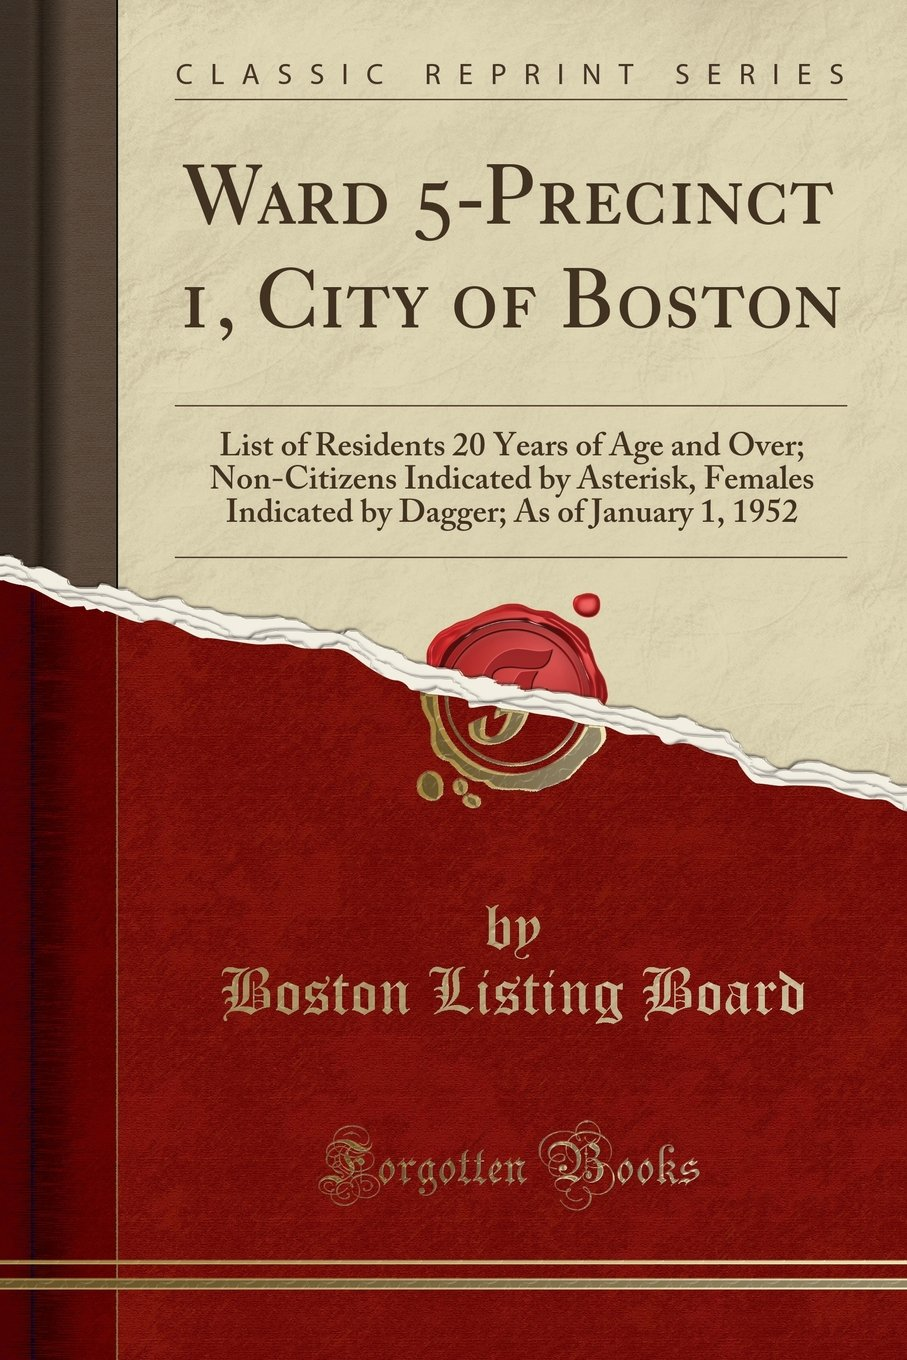 Ward 5-Precinct 1, City of Boston: List of Residents 20 Years of Age and Over; Non-Citizens Indicated by Asterisk, Females Indicated by Dagger; As of January 1, 1952 (Classic Reprint) pdf